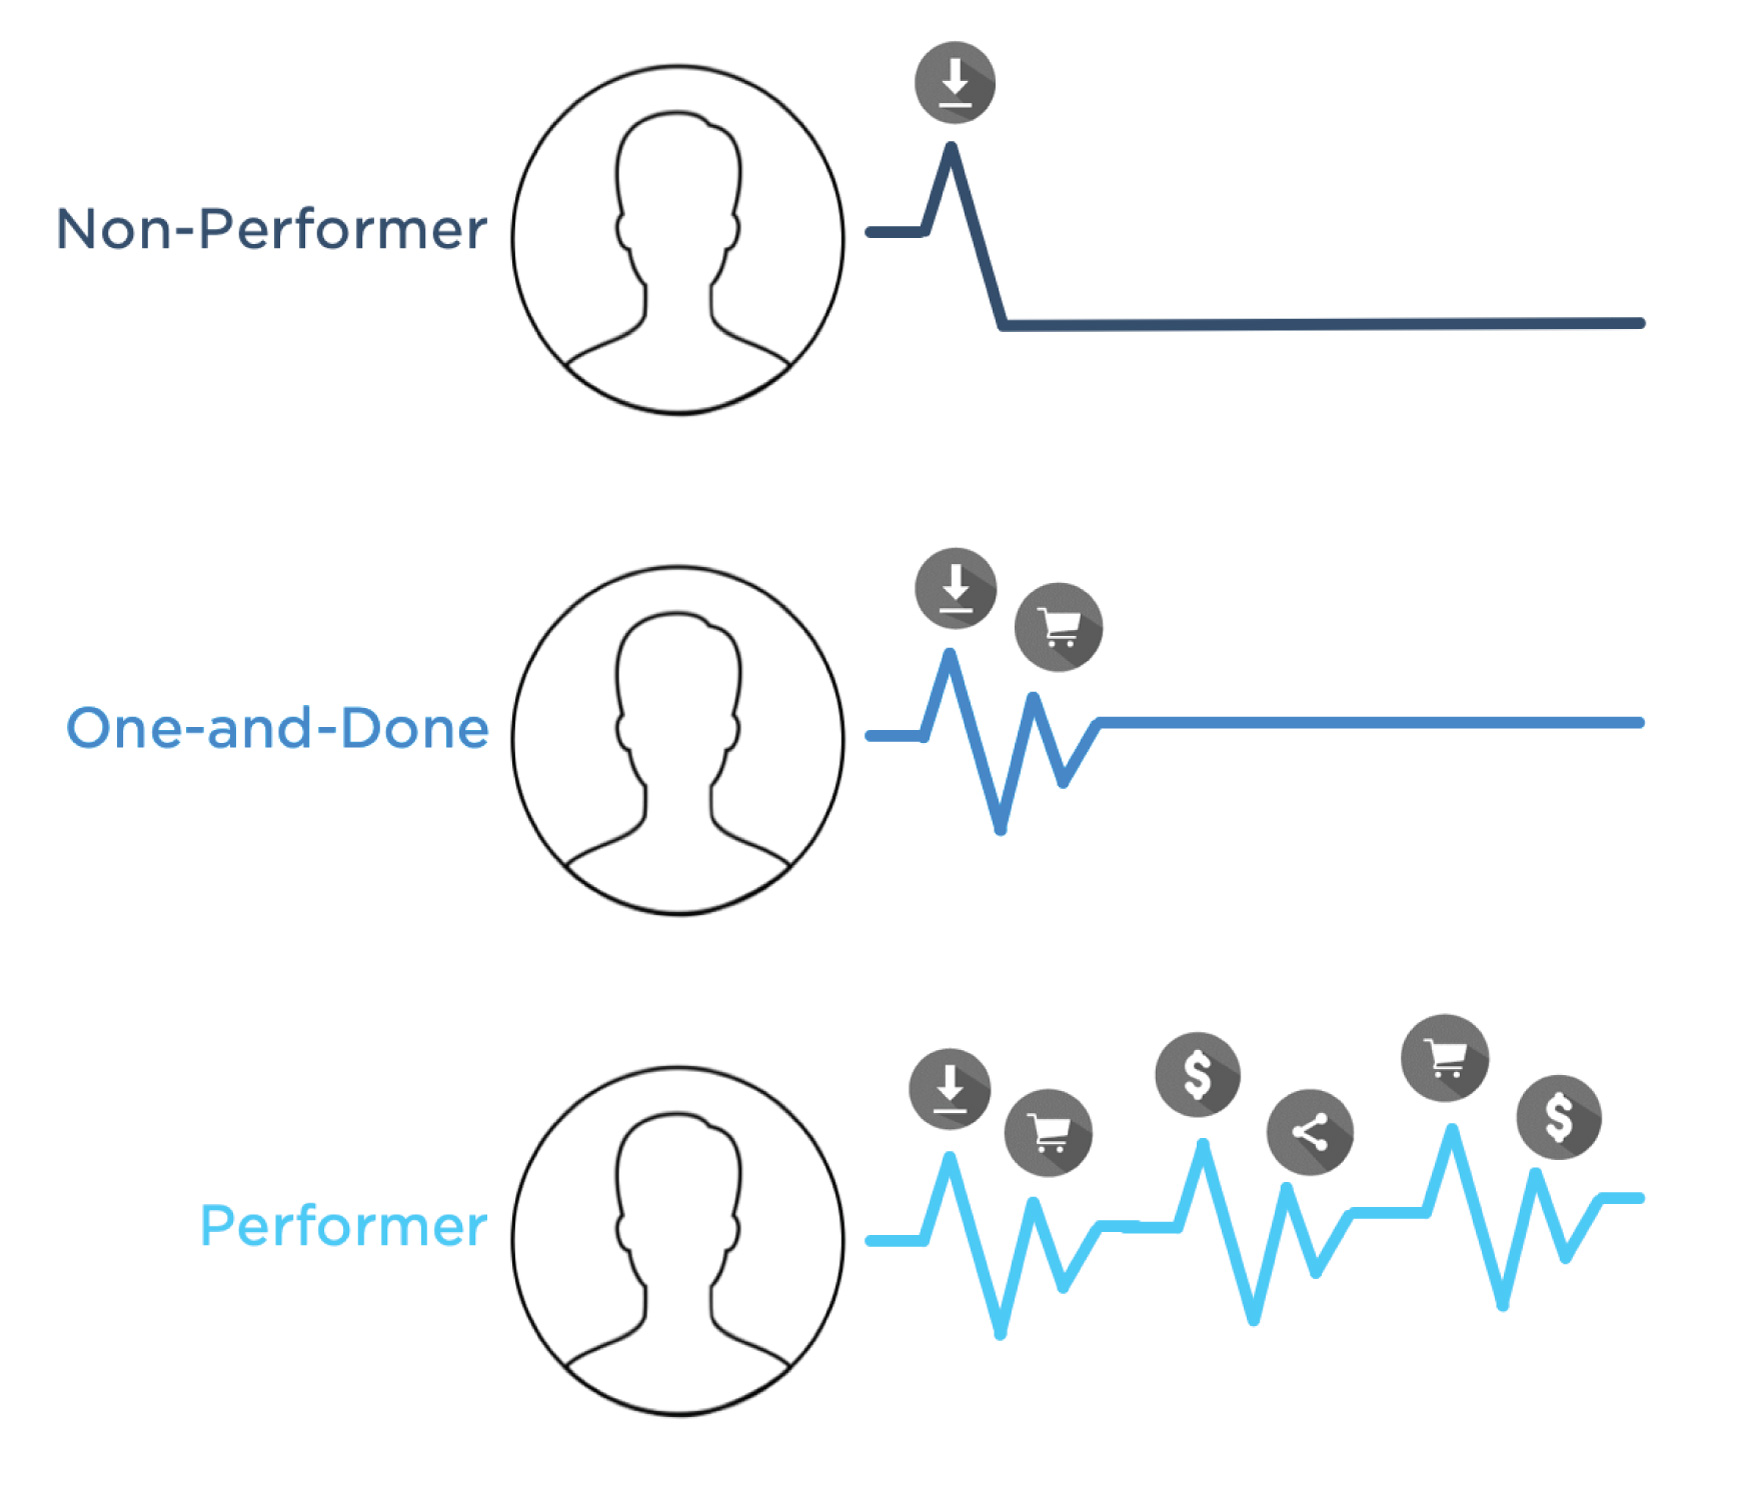 Users who are non-performers, one-and-done, or performers.